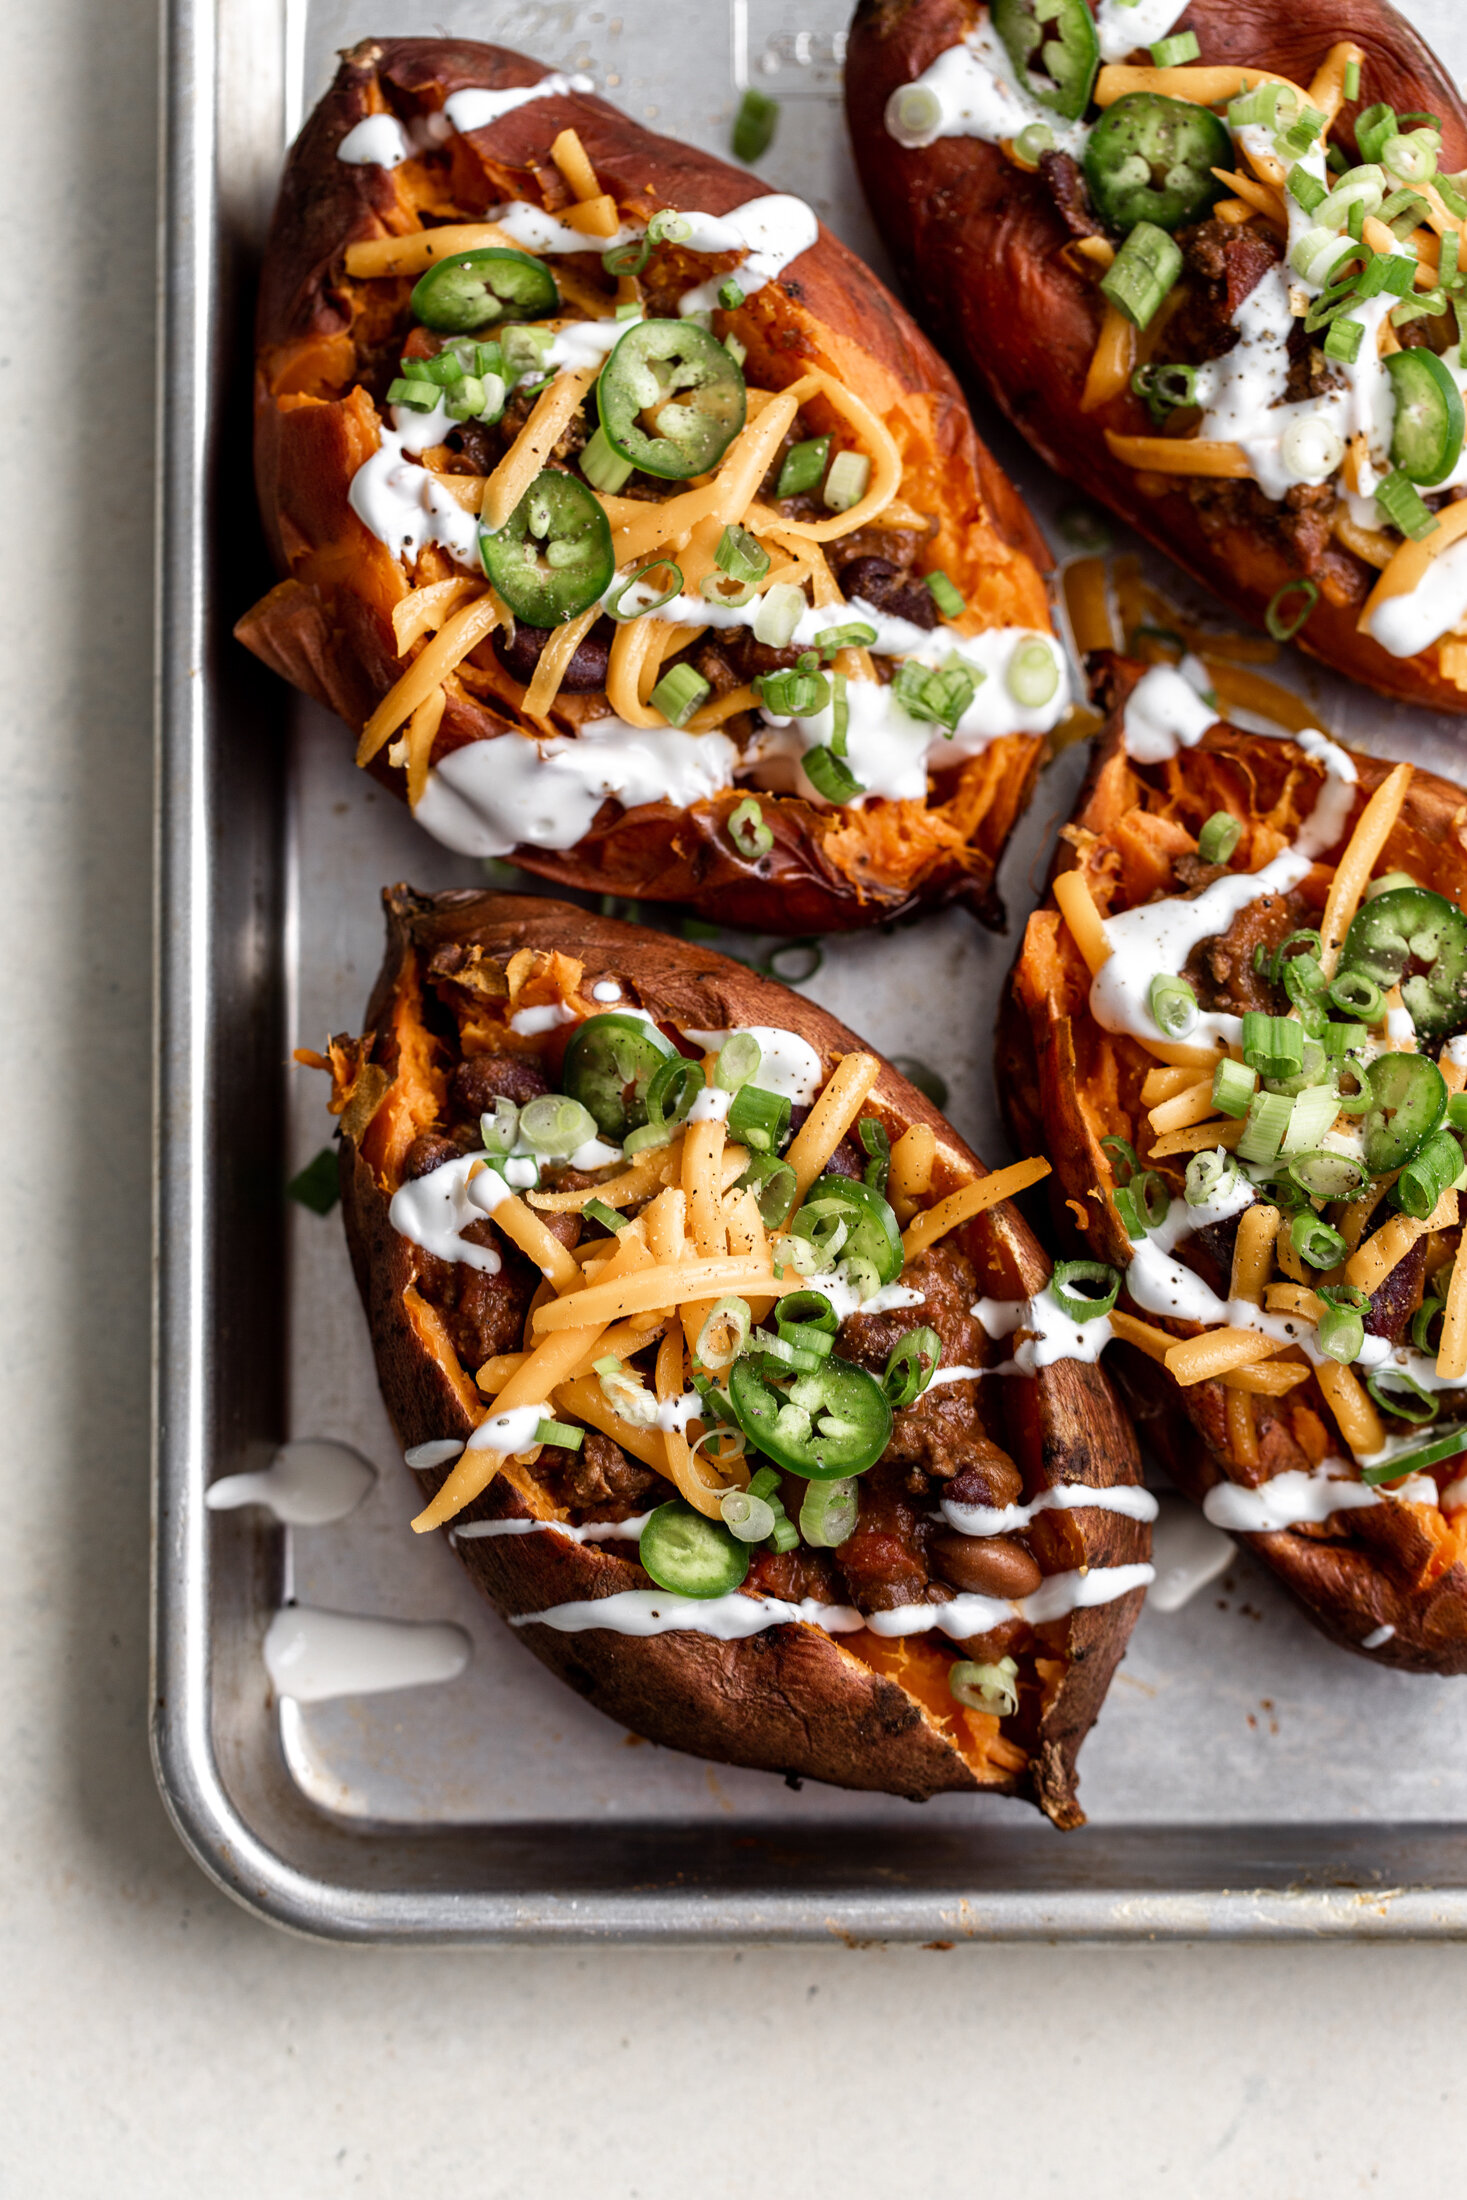 chili loaded baked sweet potatoes recipe from cooking with cocktail rings